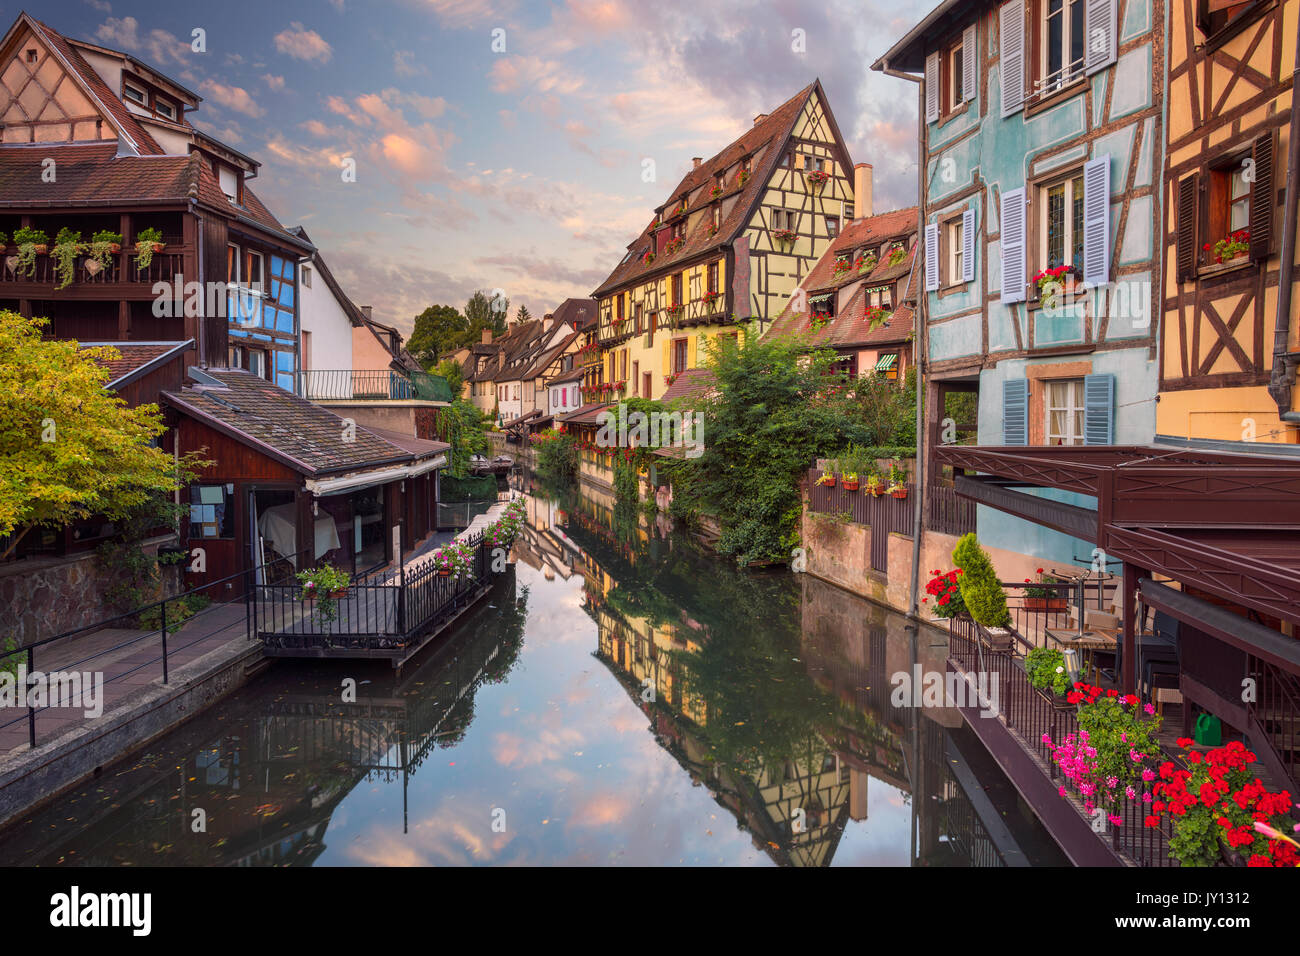 City of Colmar. Cityscape image of downtown Colmar, France during sunrise. - Stock Image